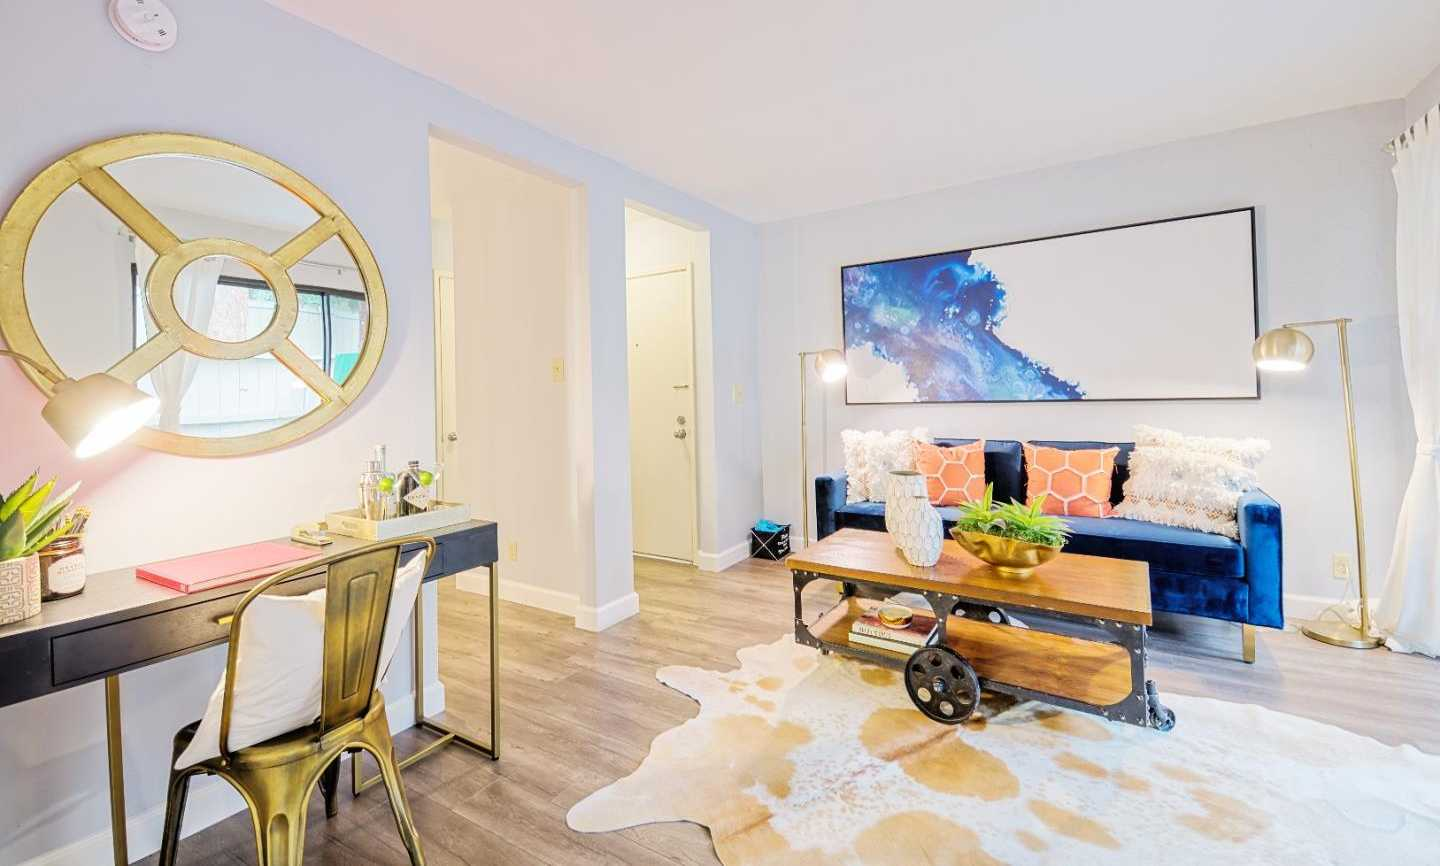 $369,000 - 1Br/1Ba -  for Sale in Santa Clara